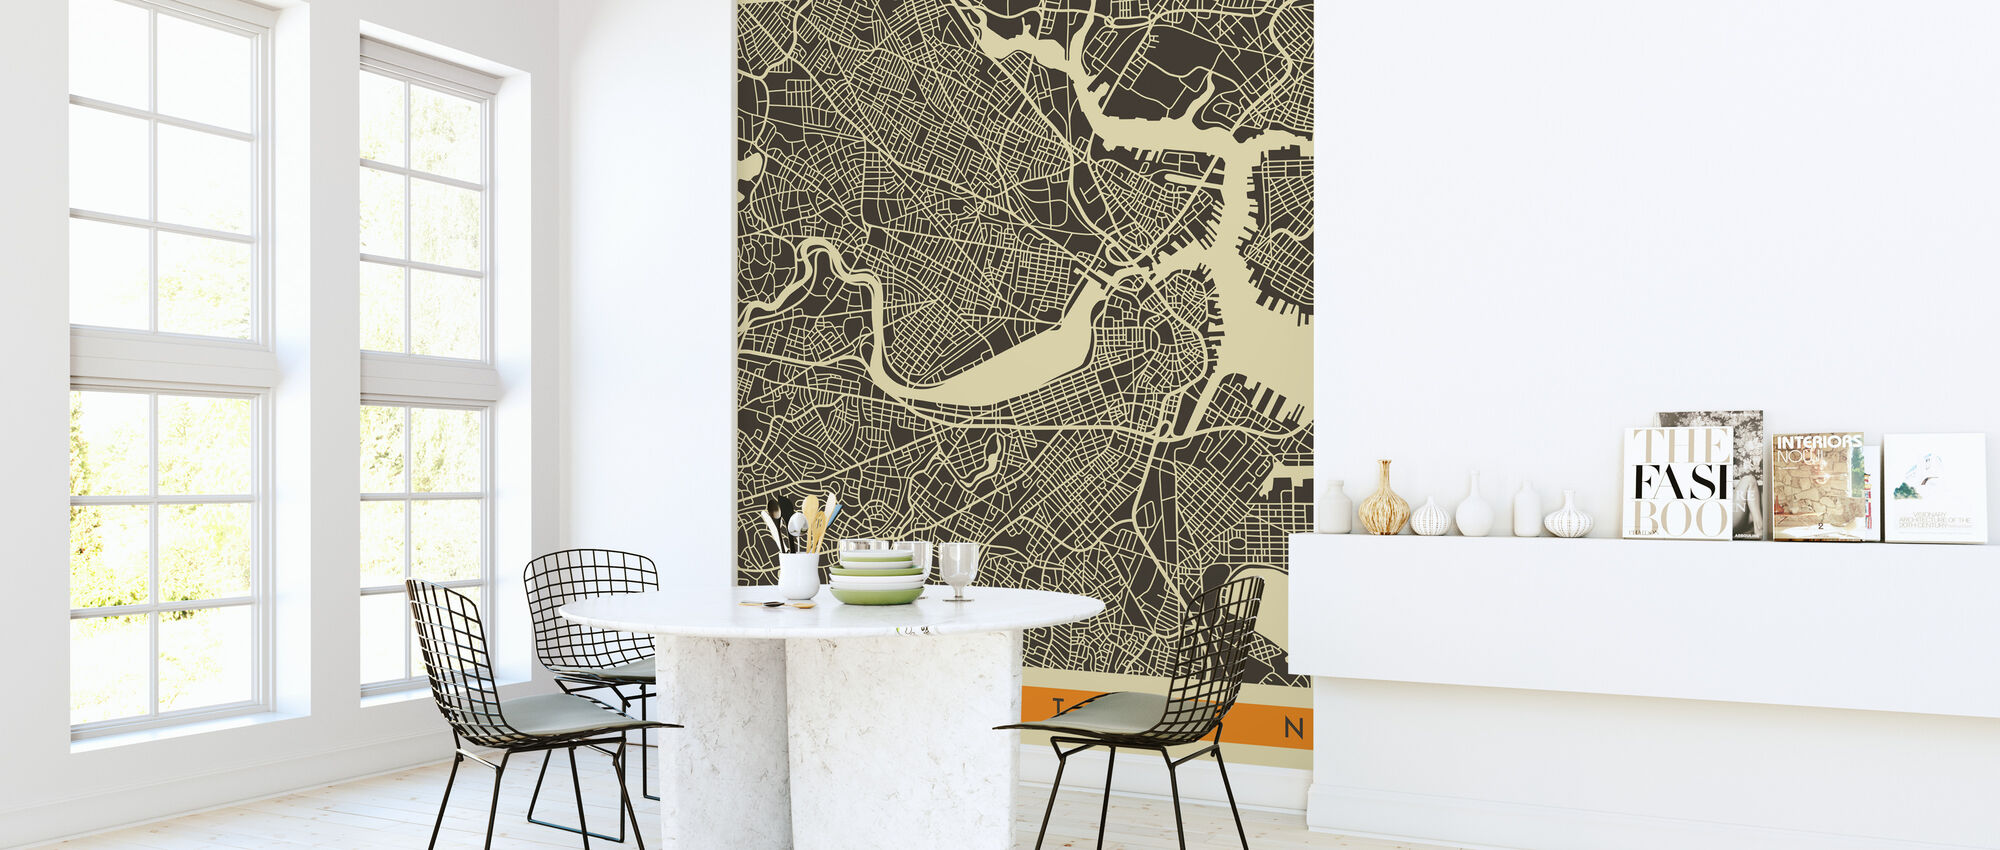 City Map - Boston - Wallpaper - Kitchen